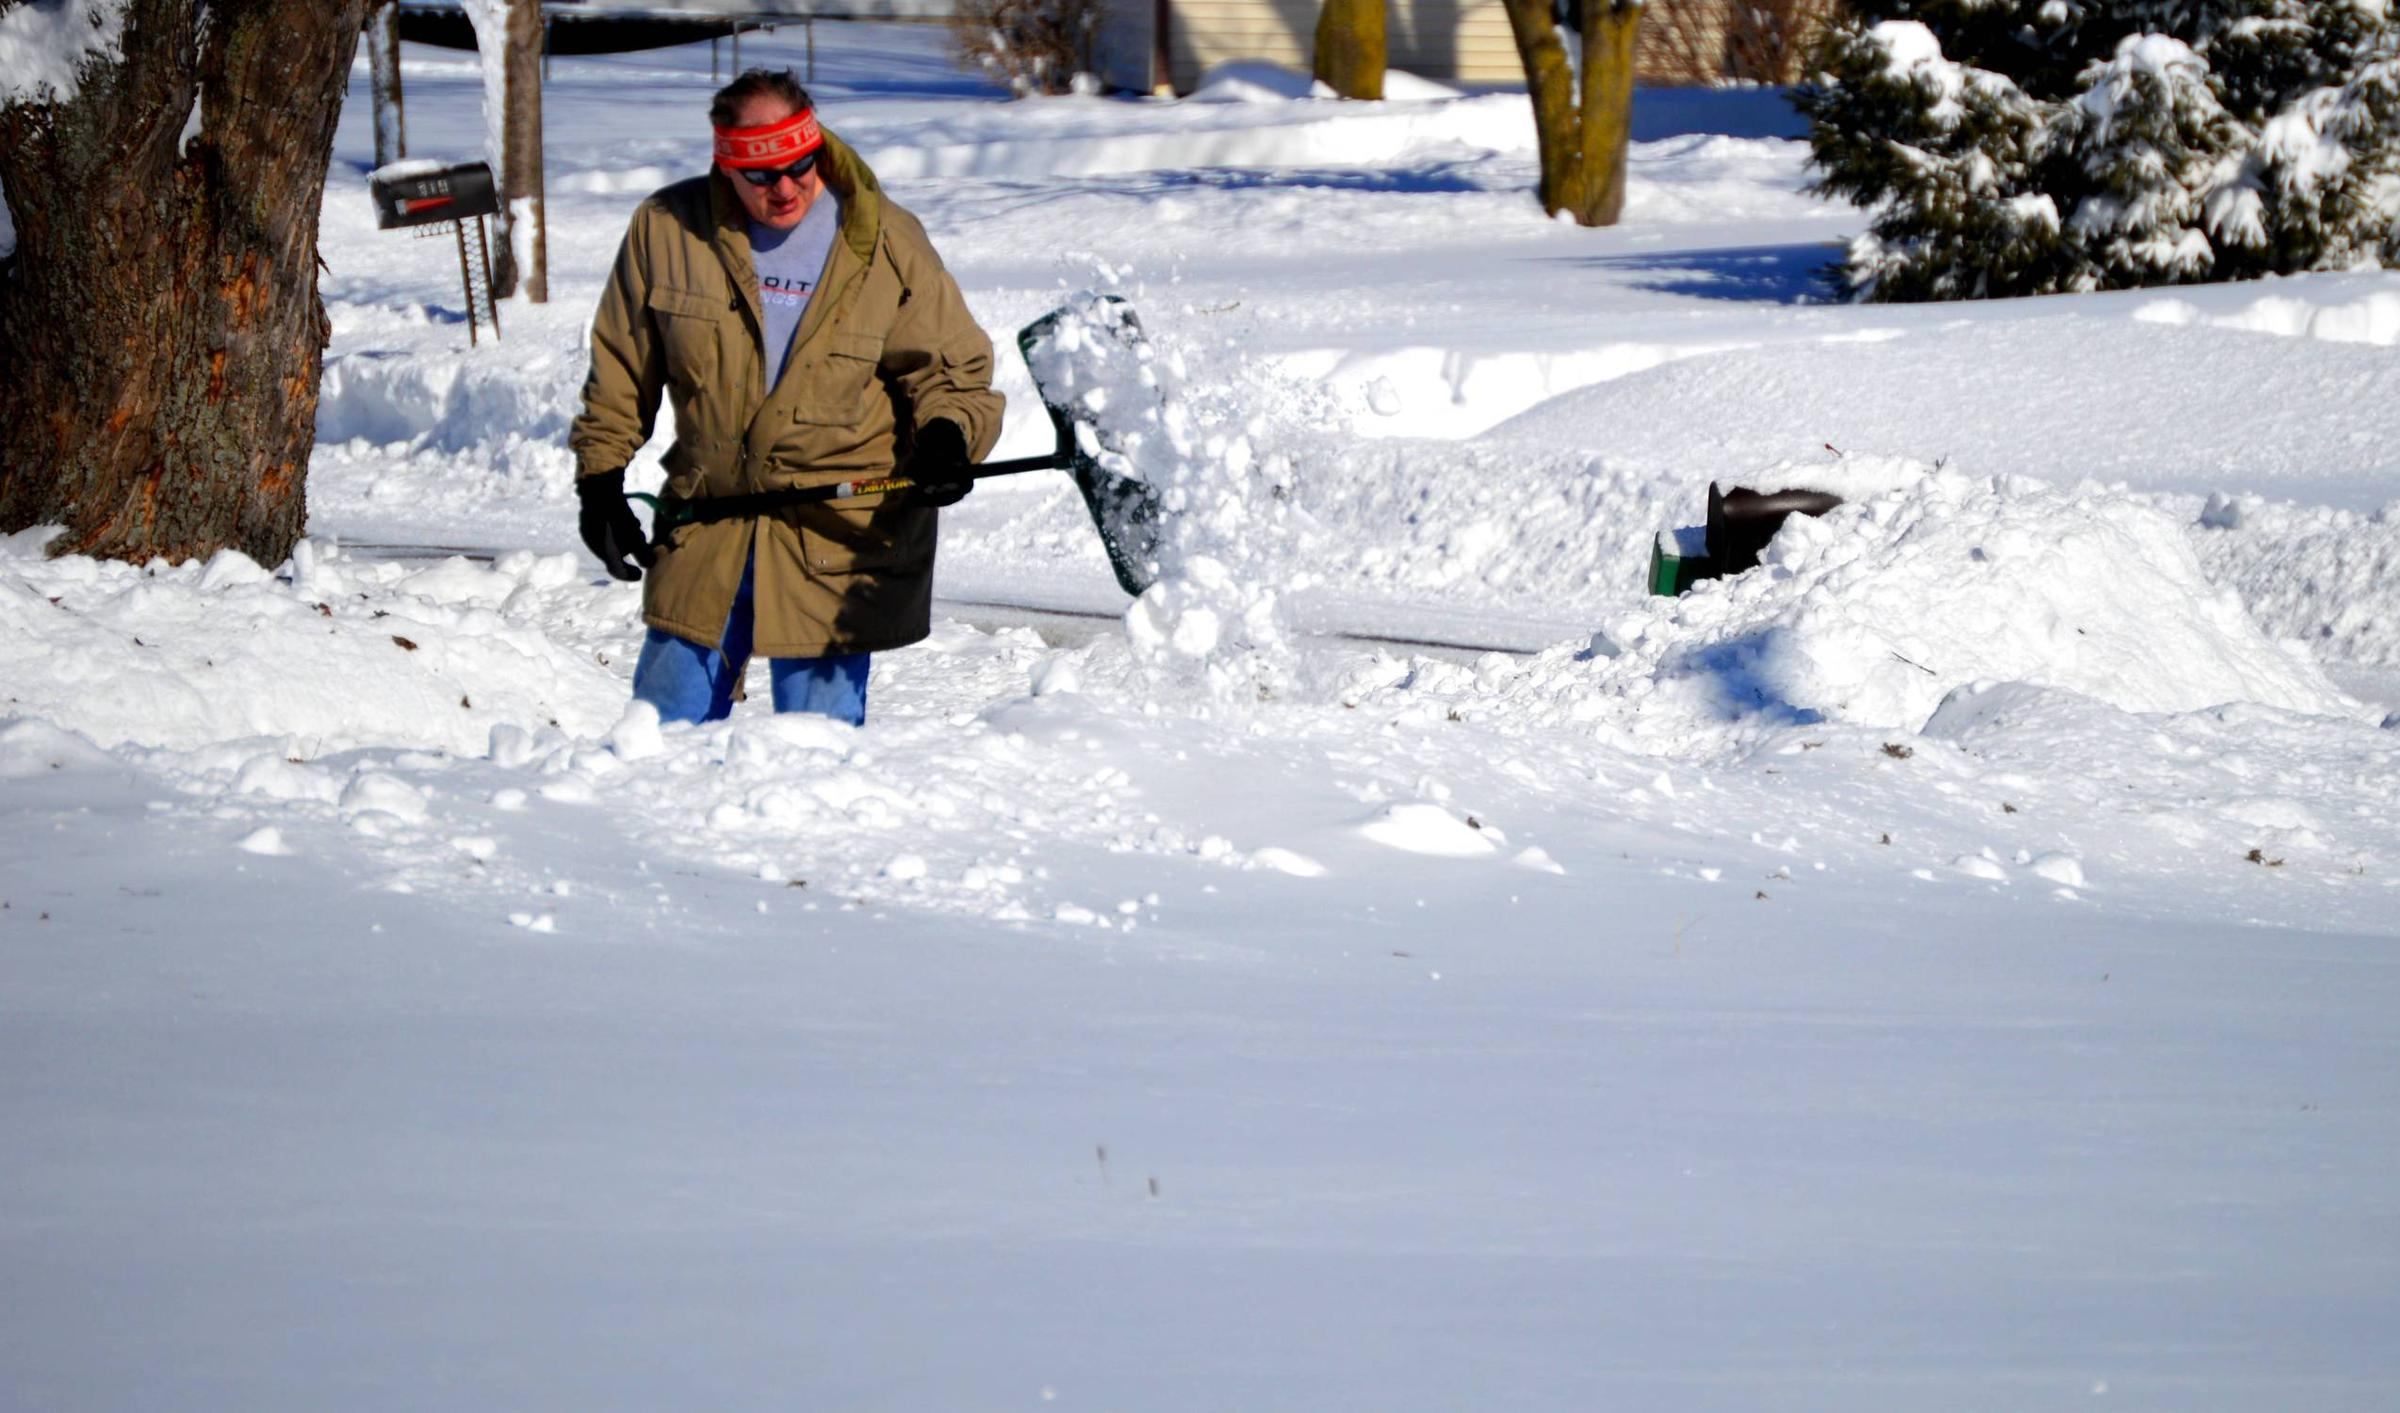 districts need more snow days says state lawmaker michigan radio